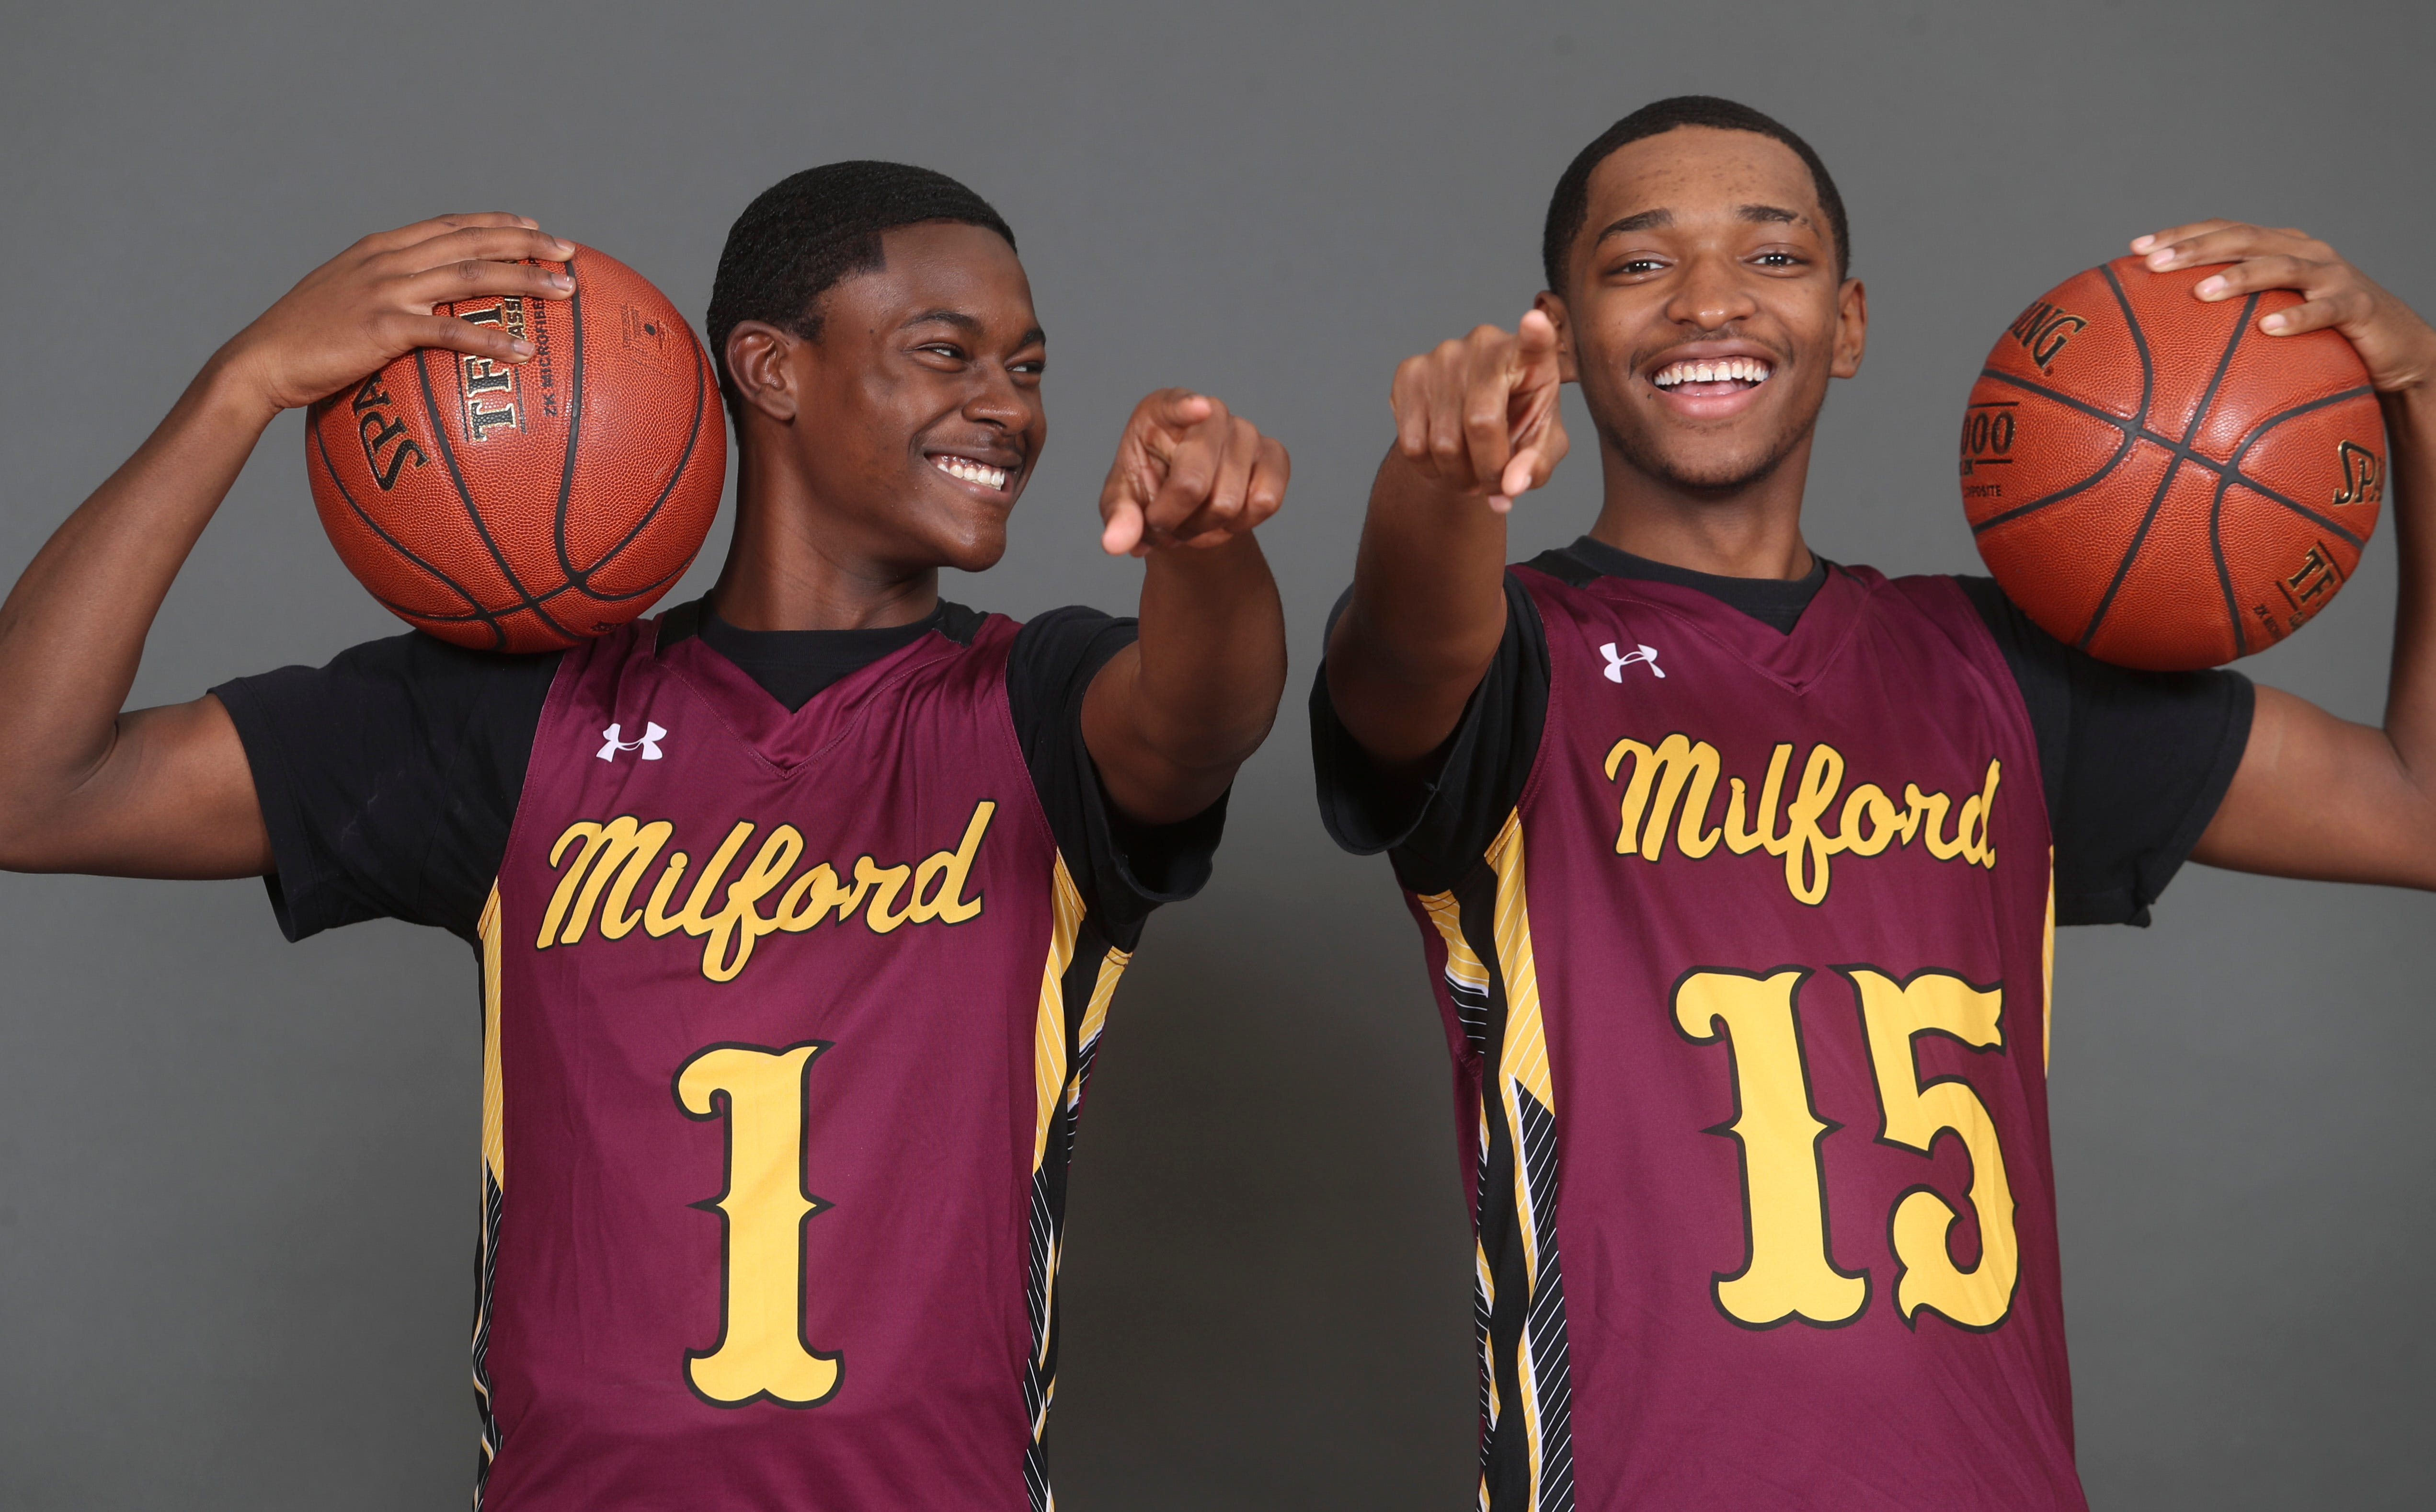 420 photos of top high school basketball players at Delaware Online media day